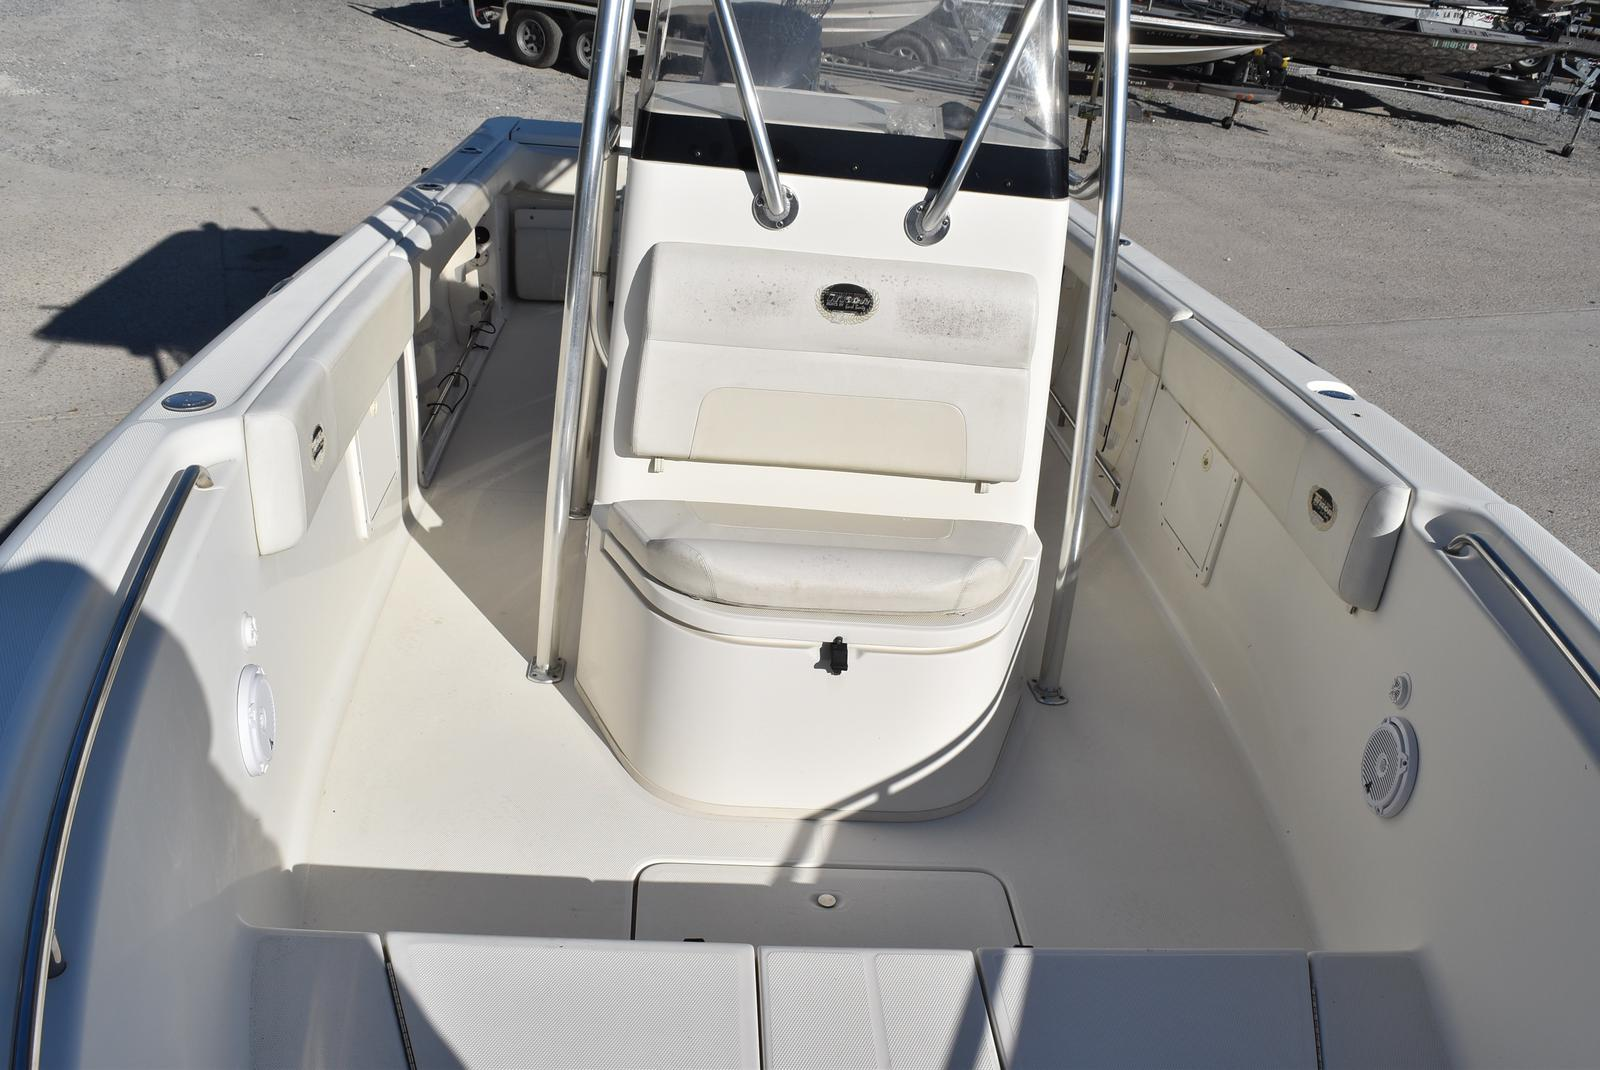 2006 Triton boat for sale, model of the boat is 2486 & Image # 6 of 24